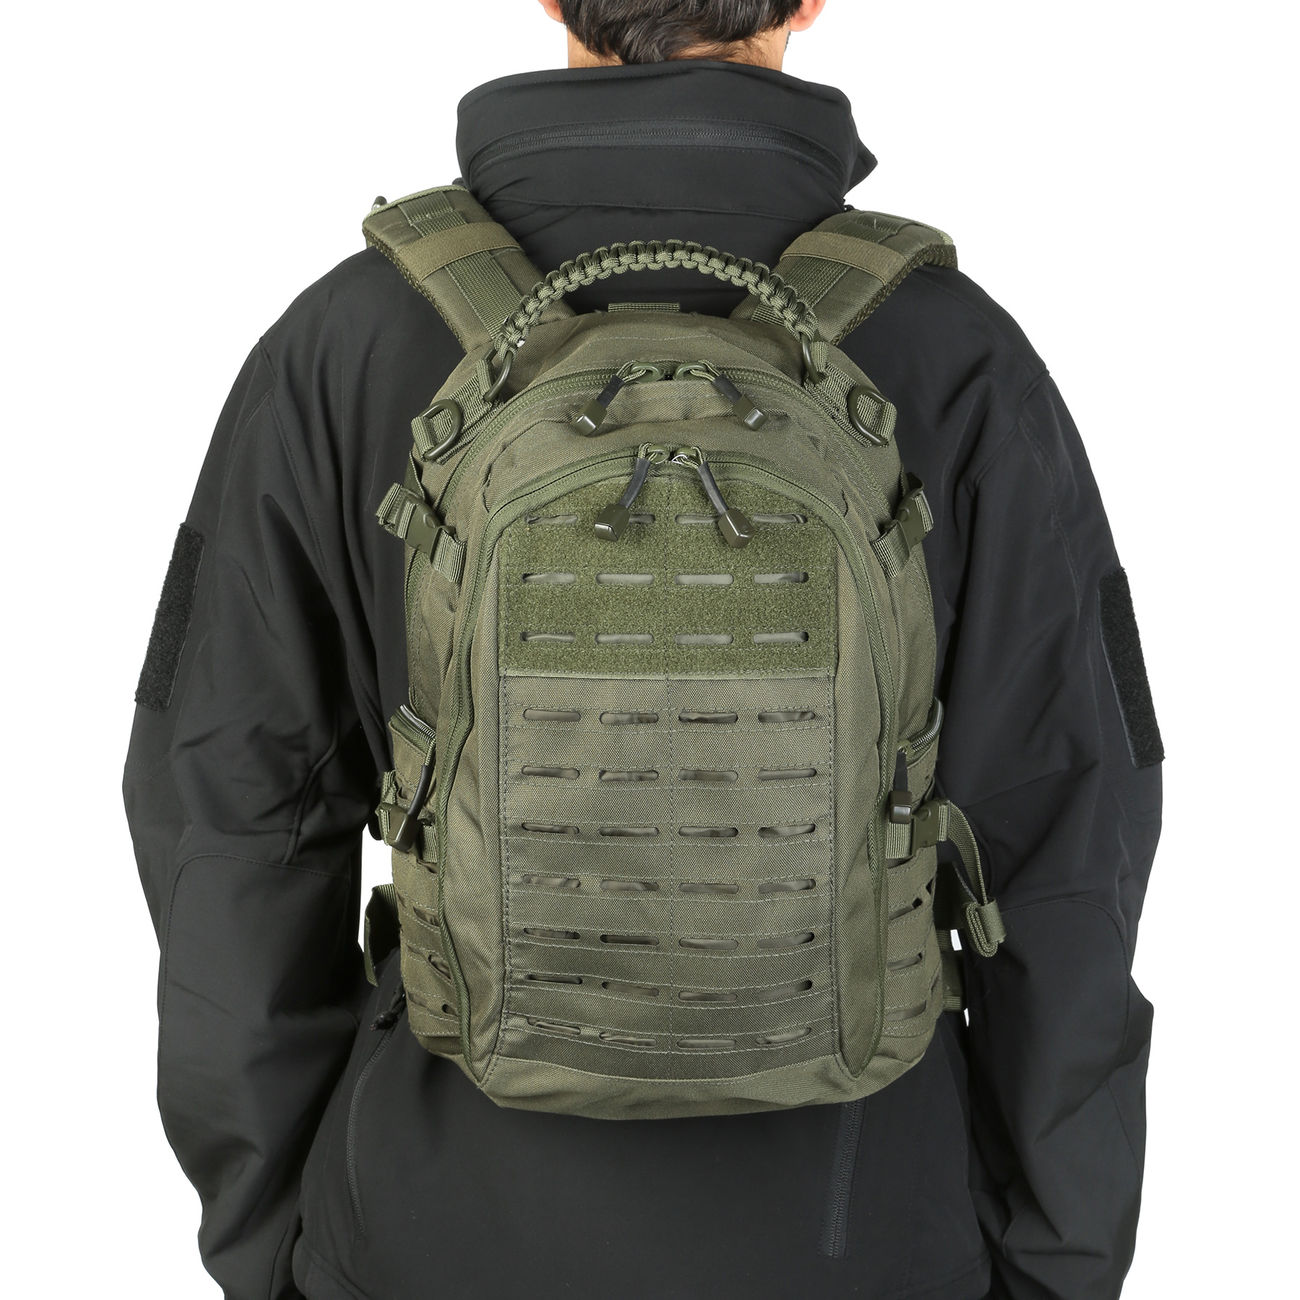 Mil-Tec Rucksack Mission Pack Laser Cut Small oliv 10